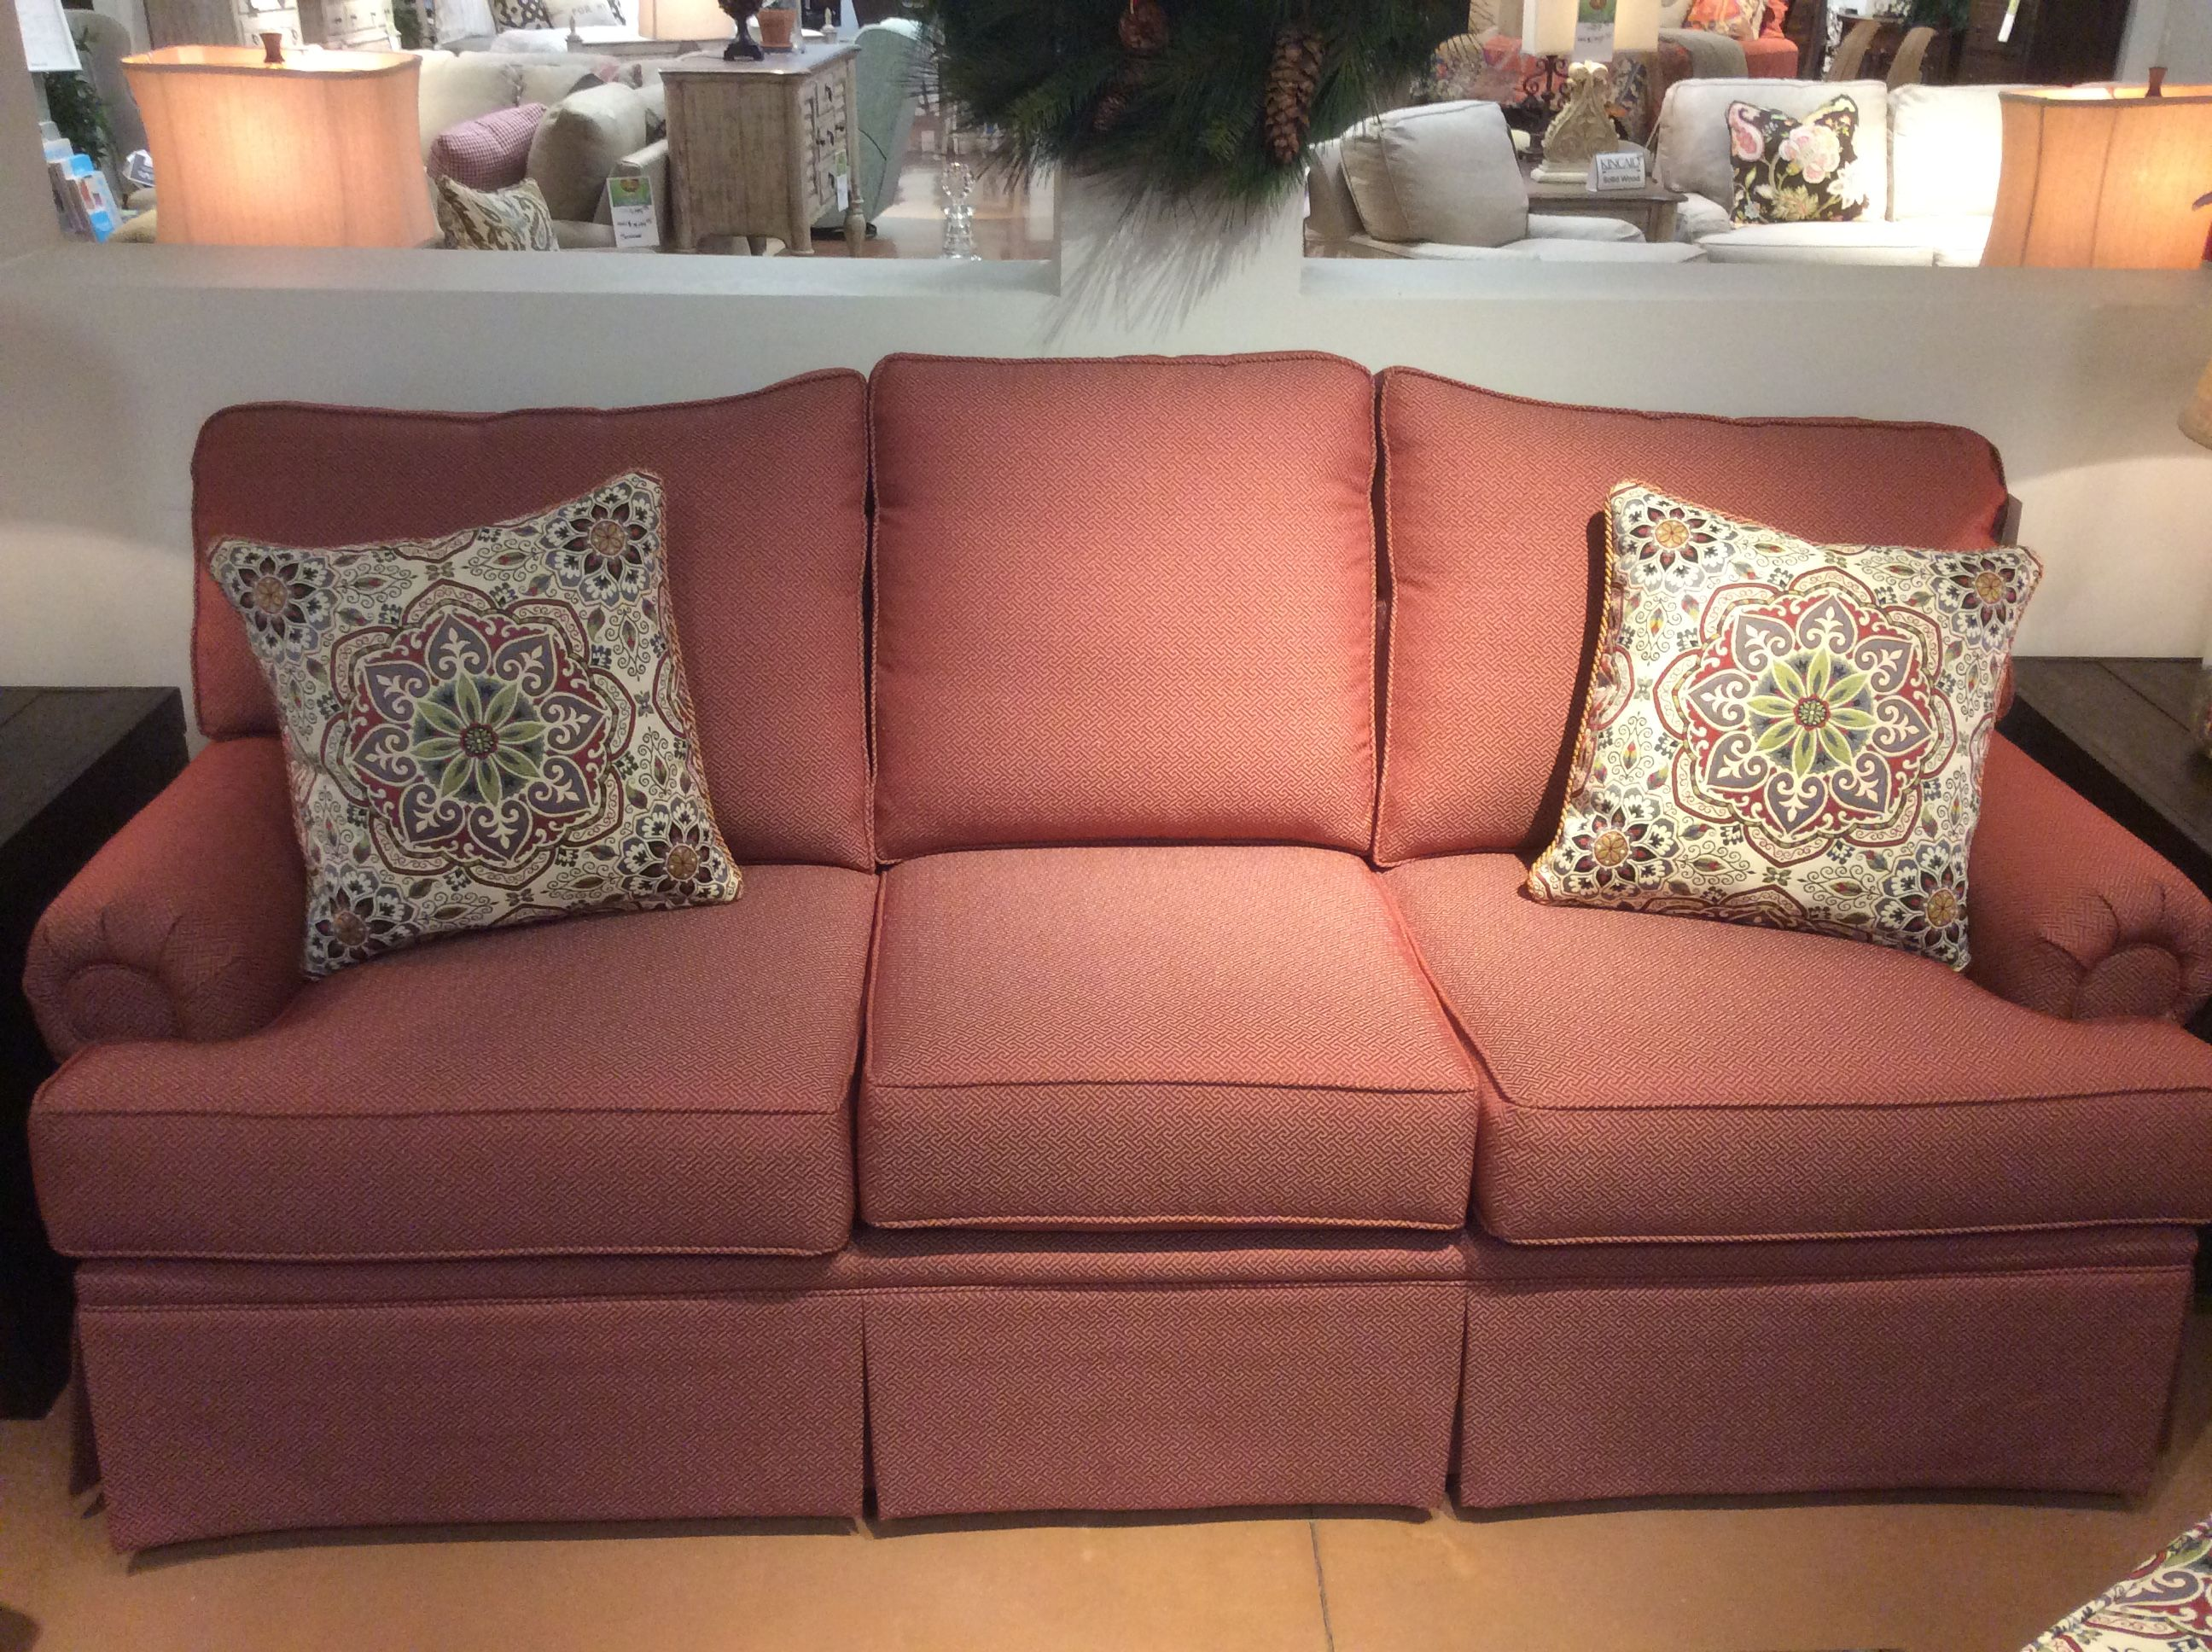 Masterfield Sofa Available at Turner s Fine Furniture Visit Tonya